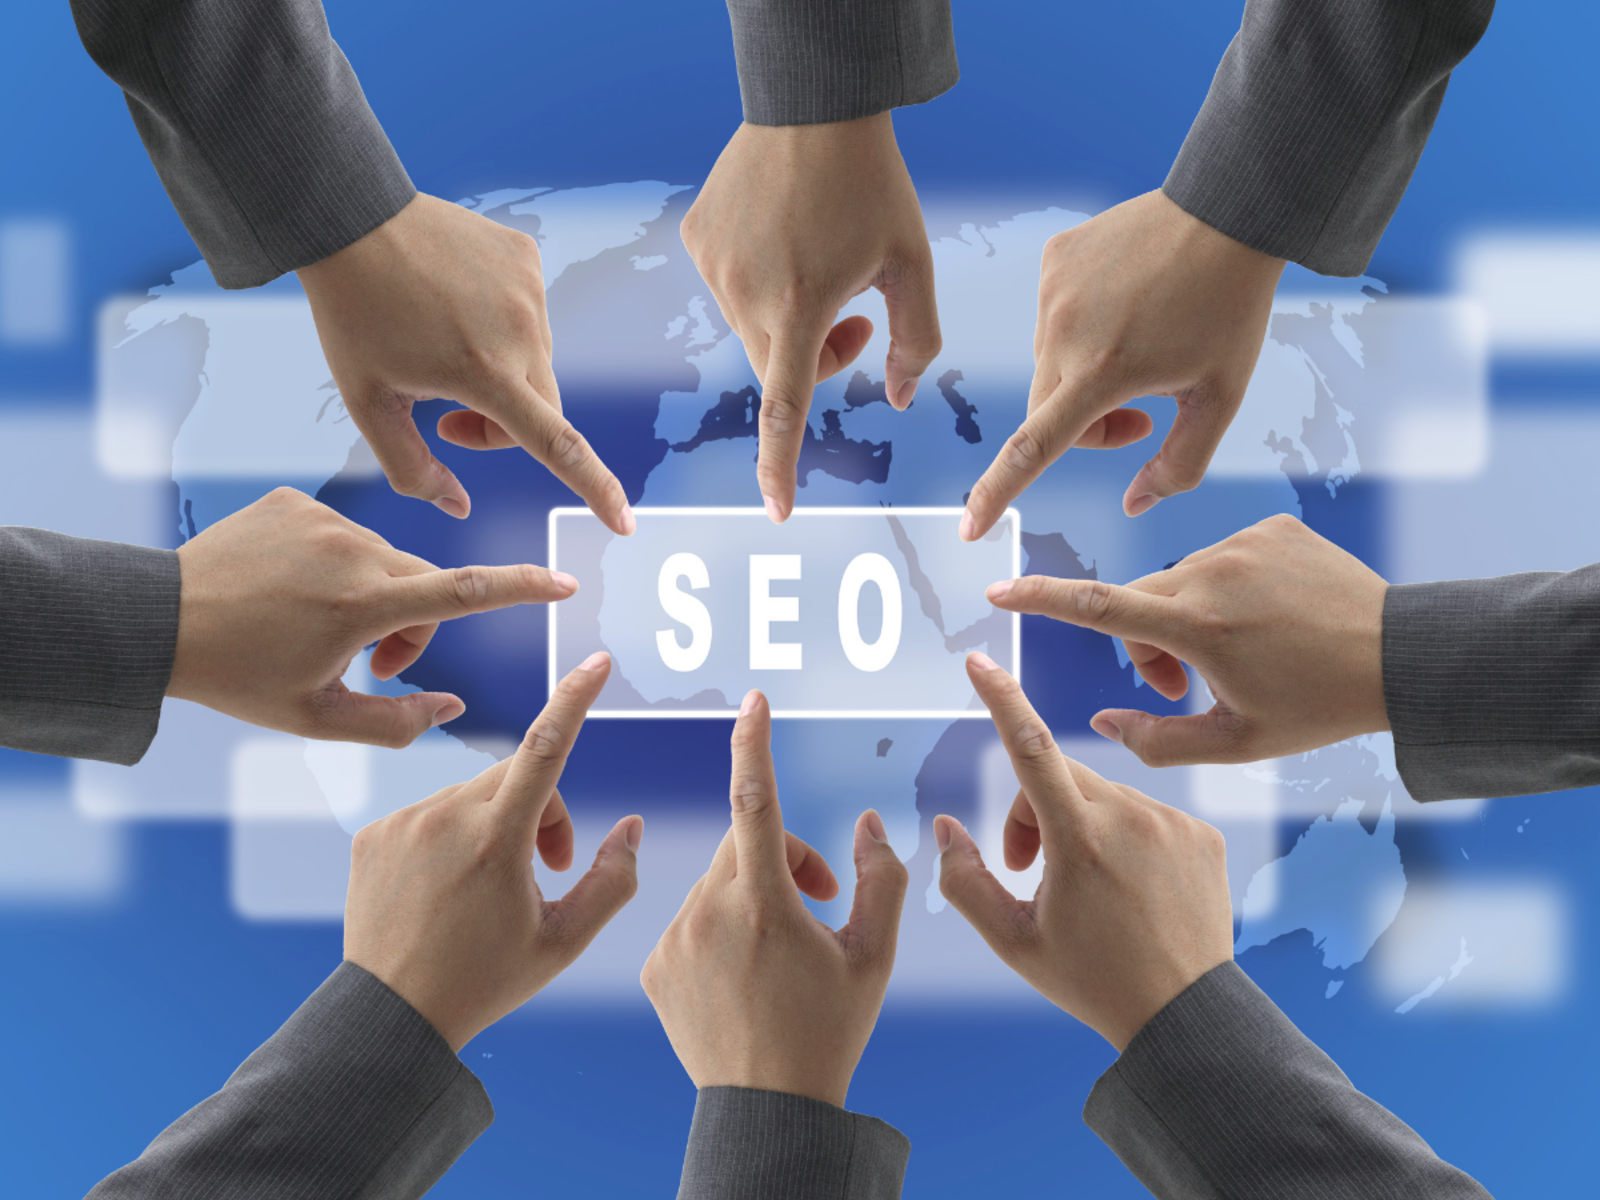 Will SEO help grow my Law firm